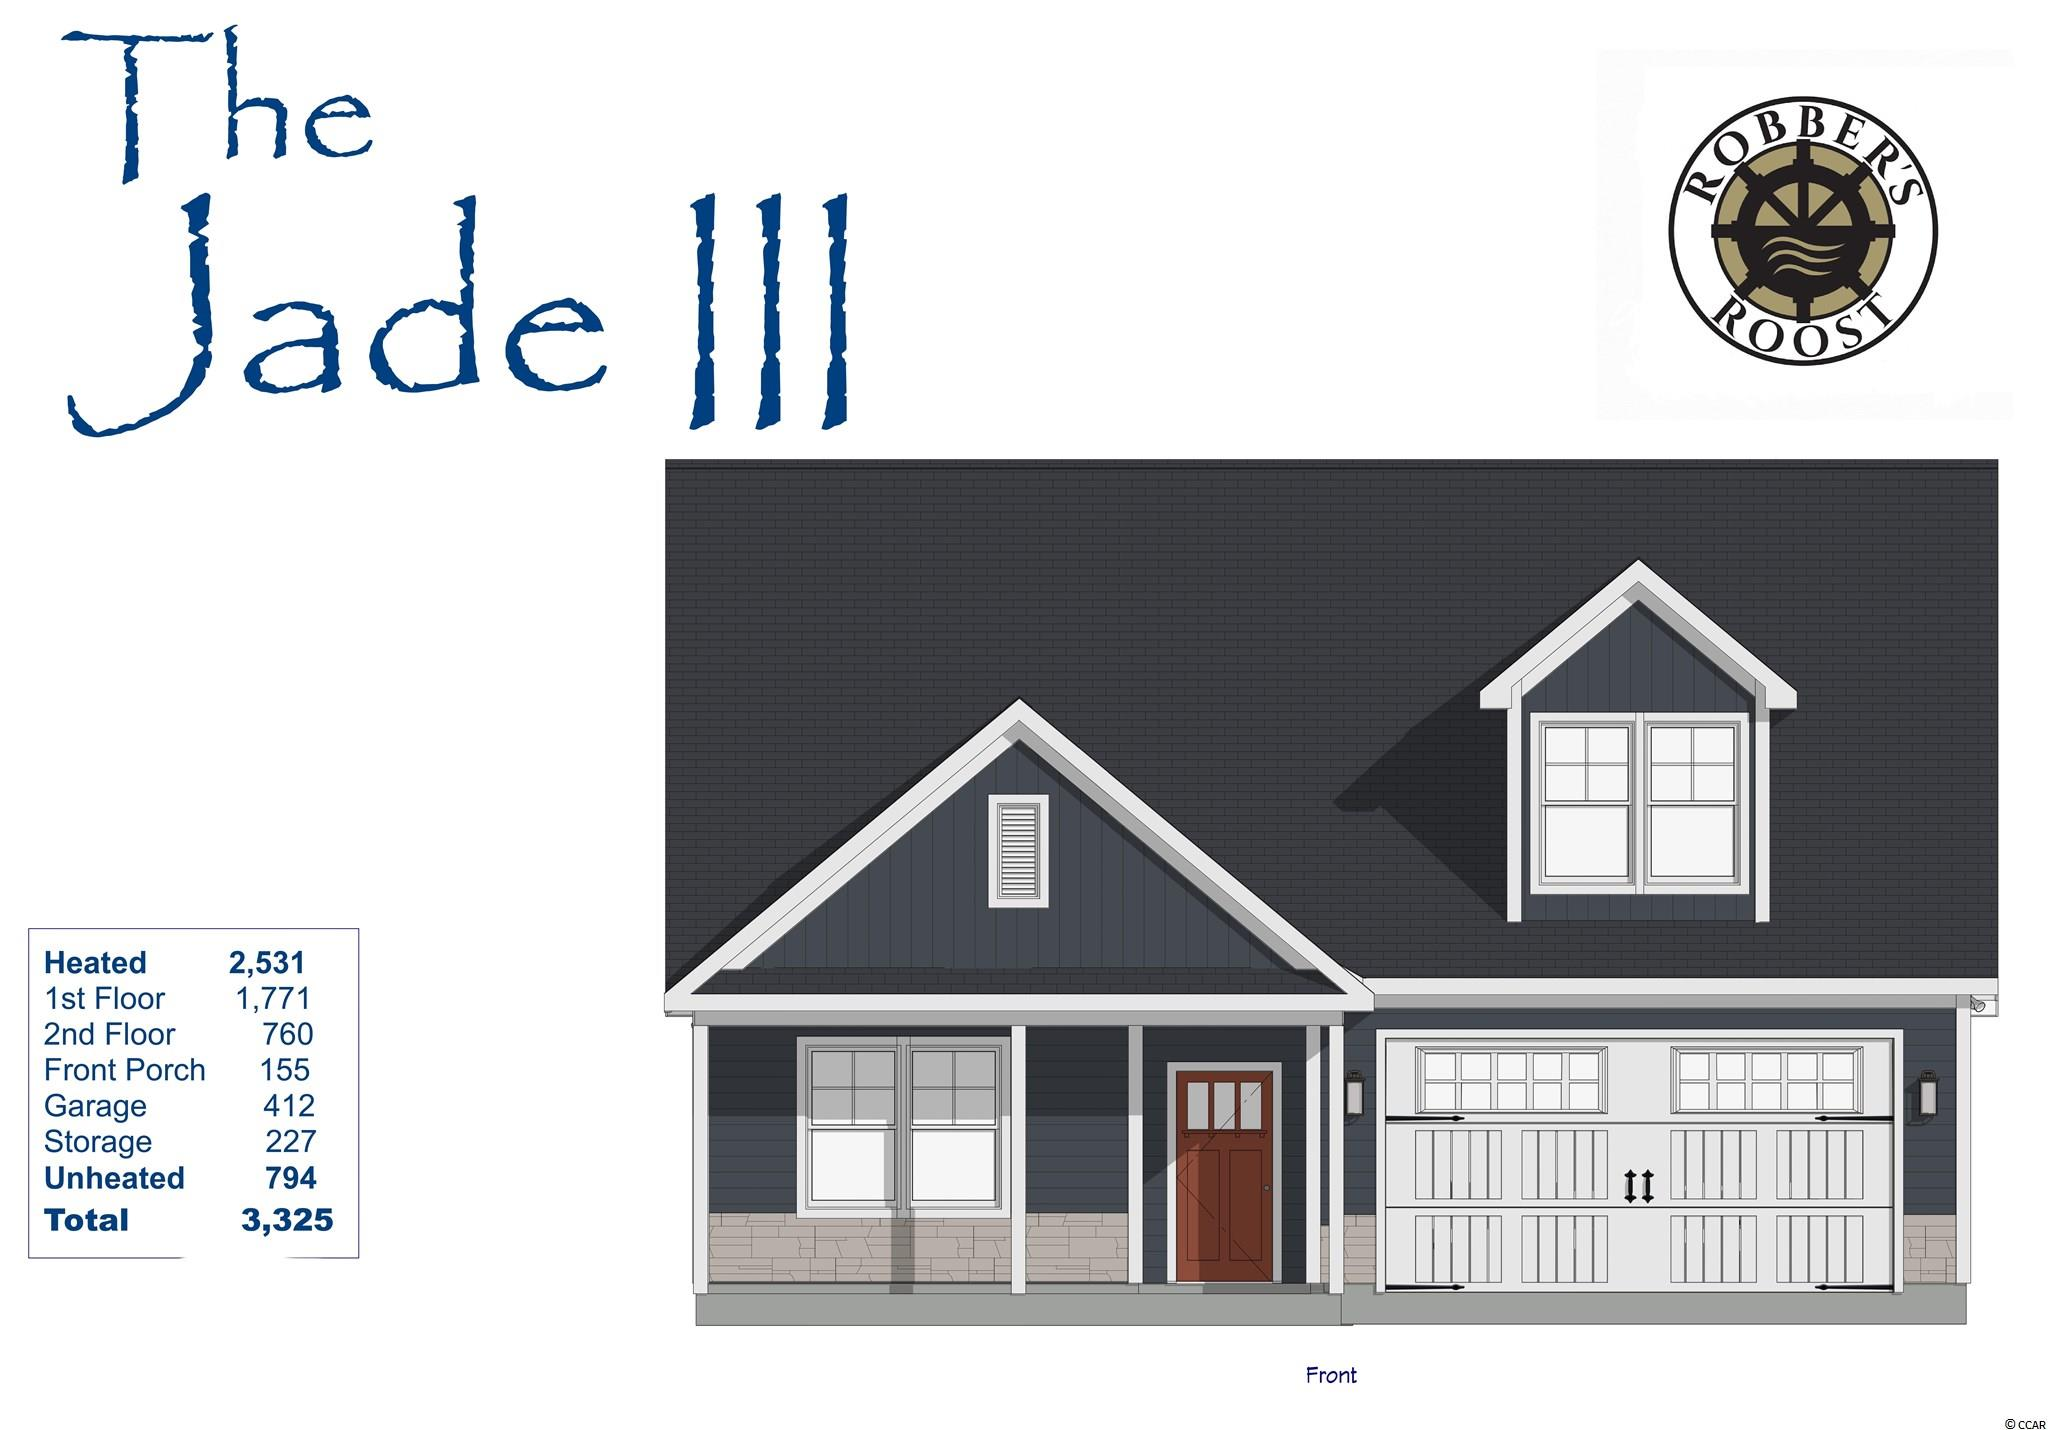 1101 Mary Read Dr. North Myrtle Beach, SC 29582